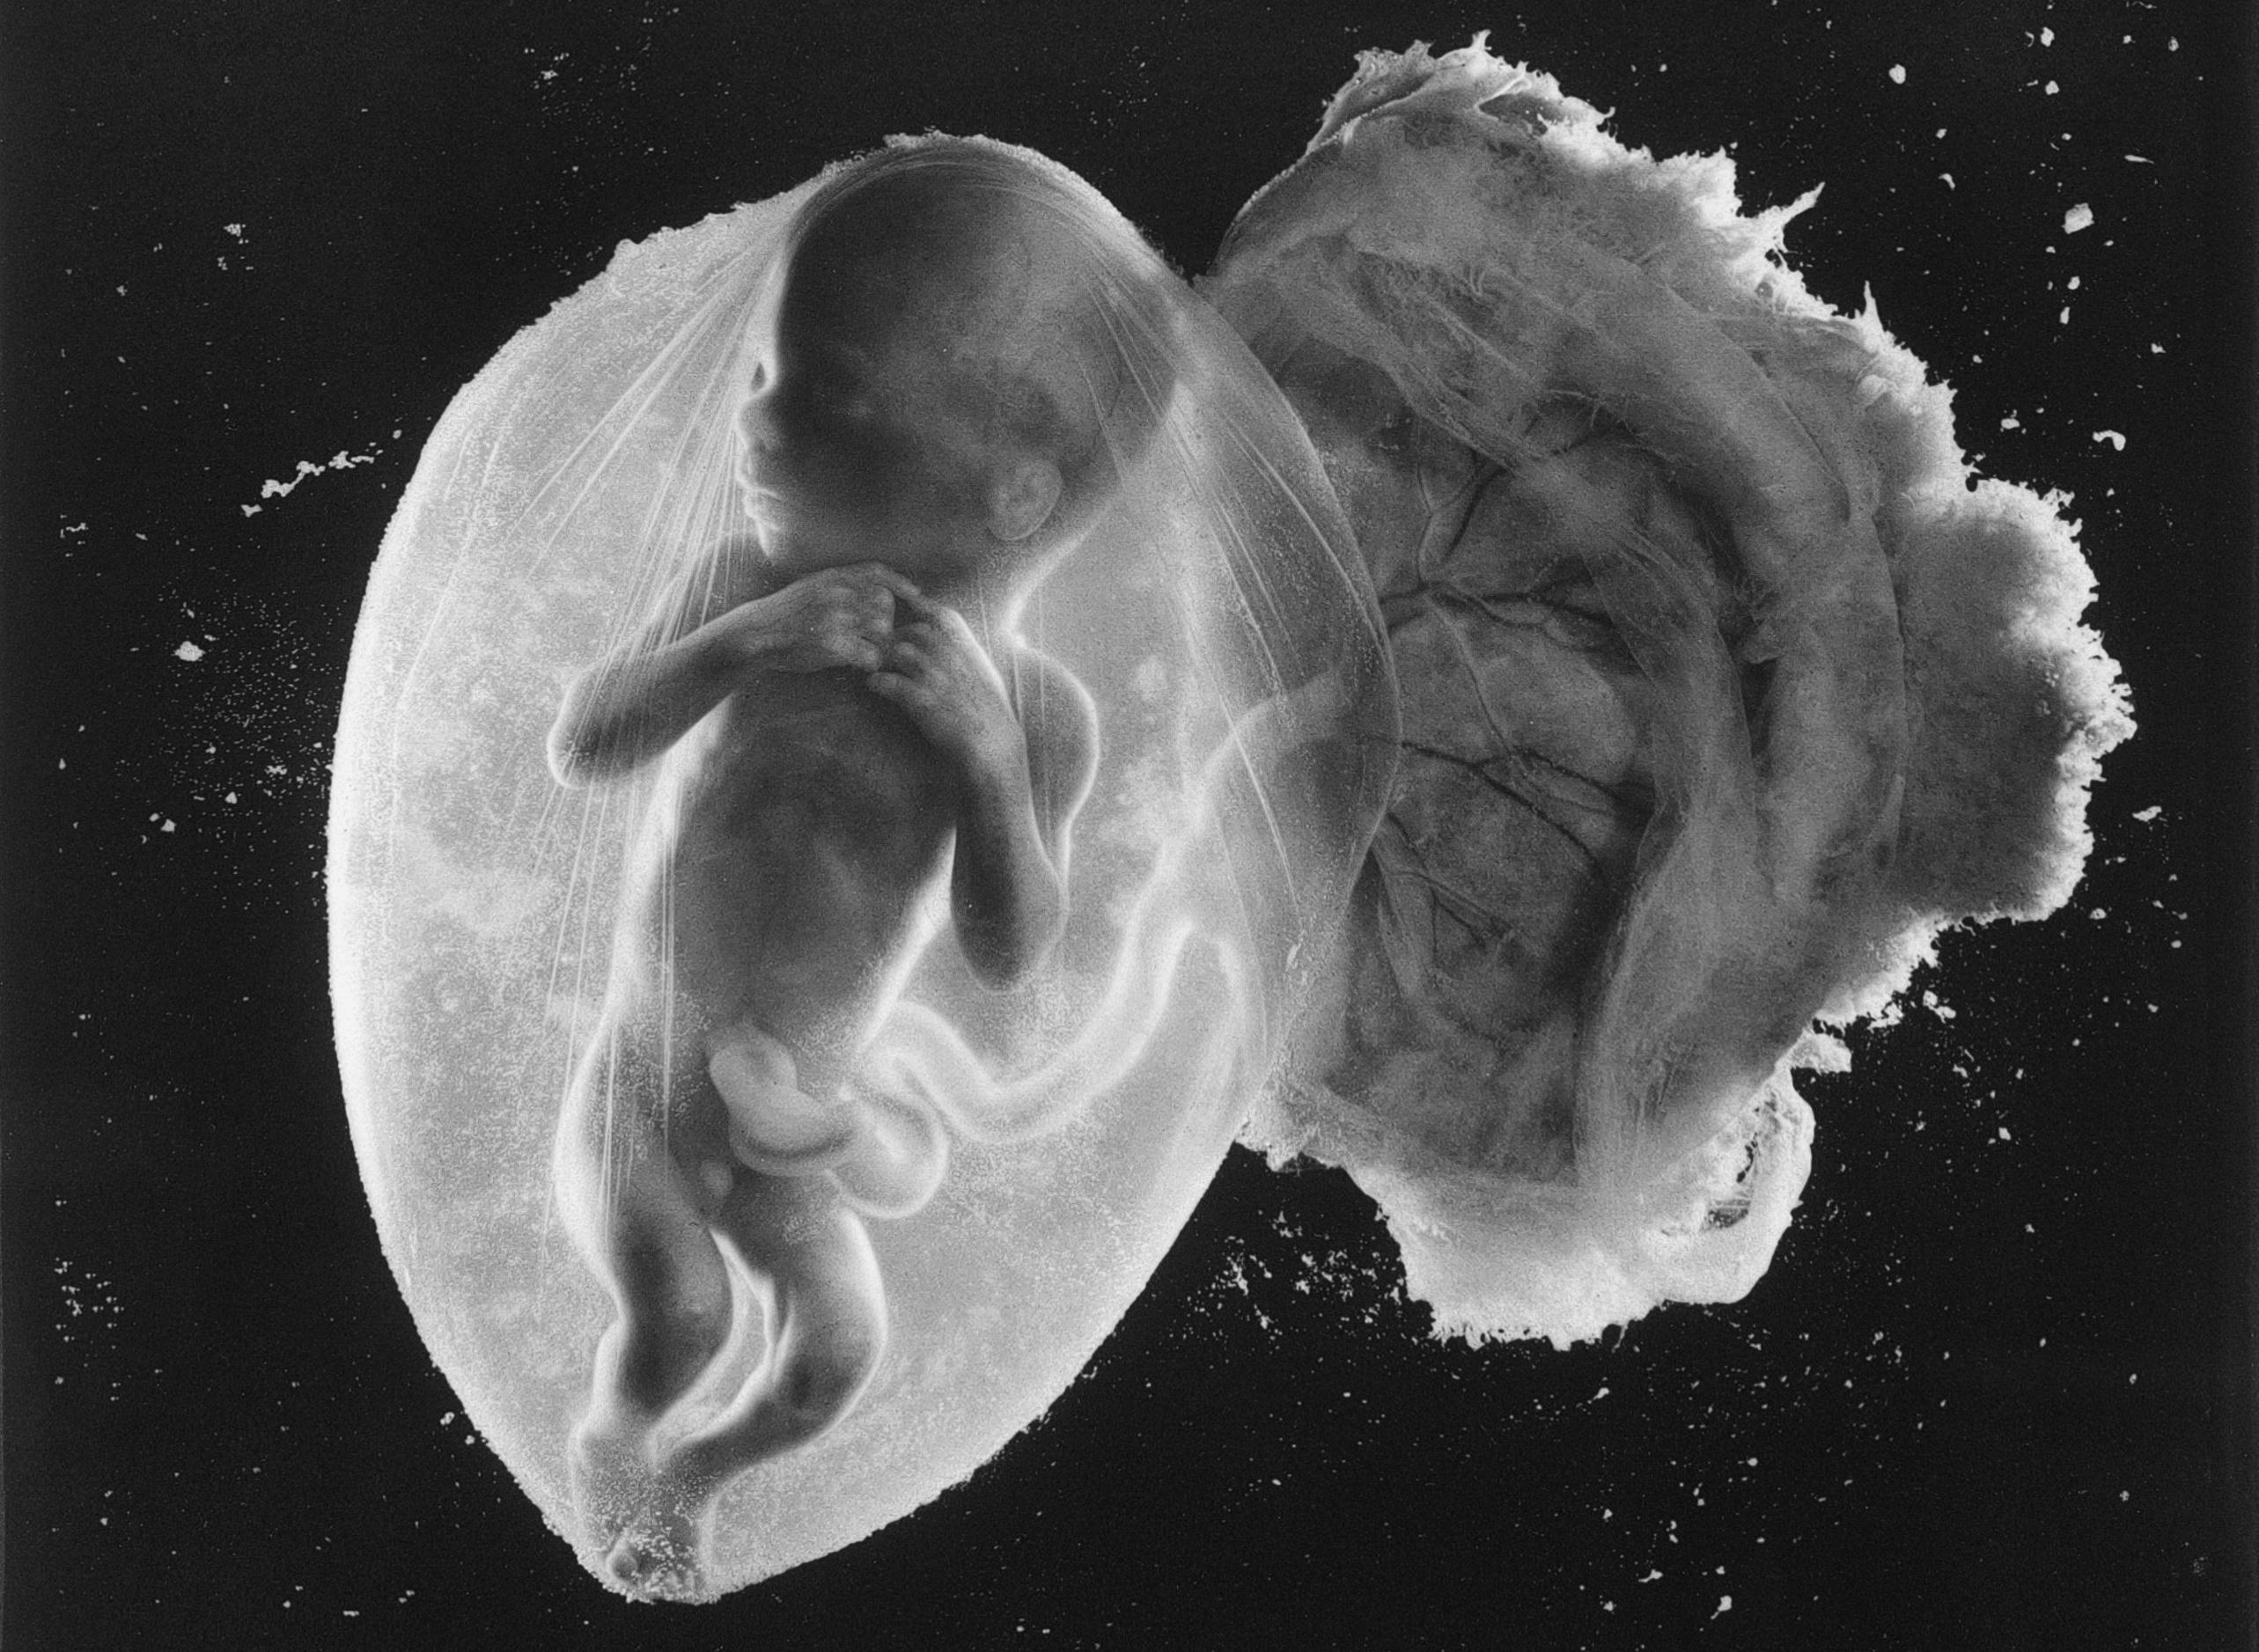 Foetus 18 Weeks: the greatest photograph of the 20th century?